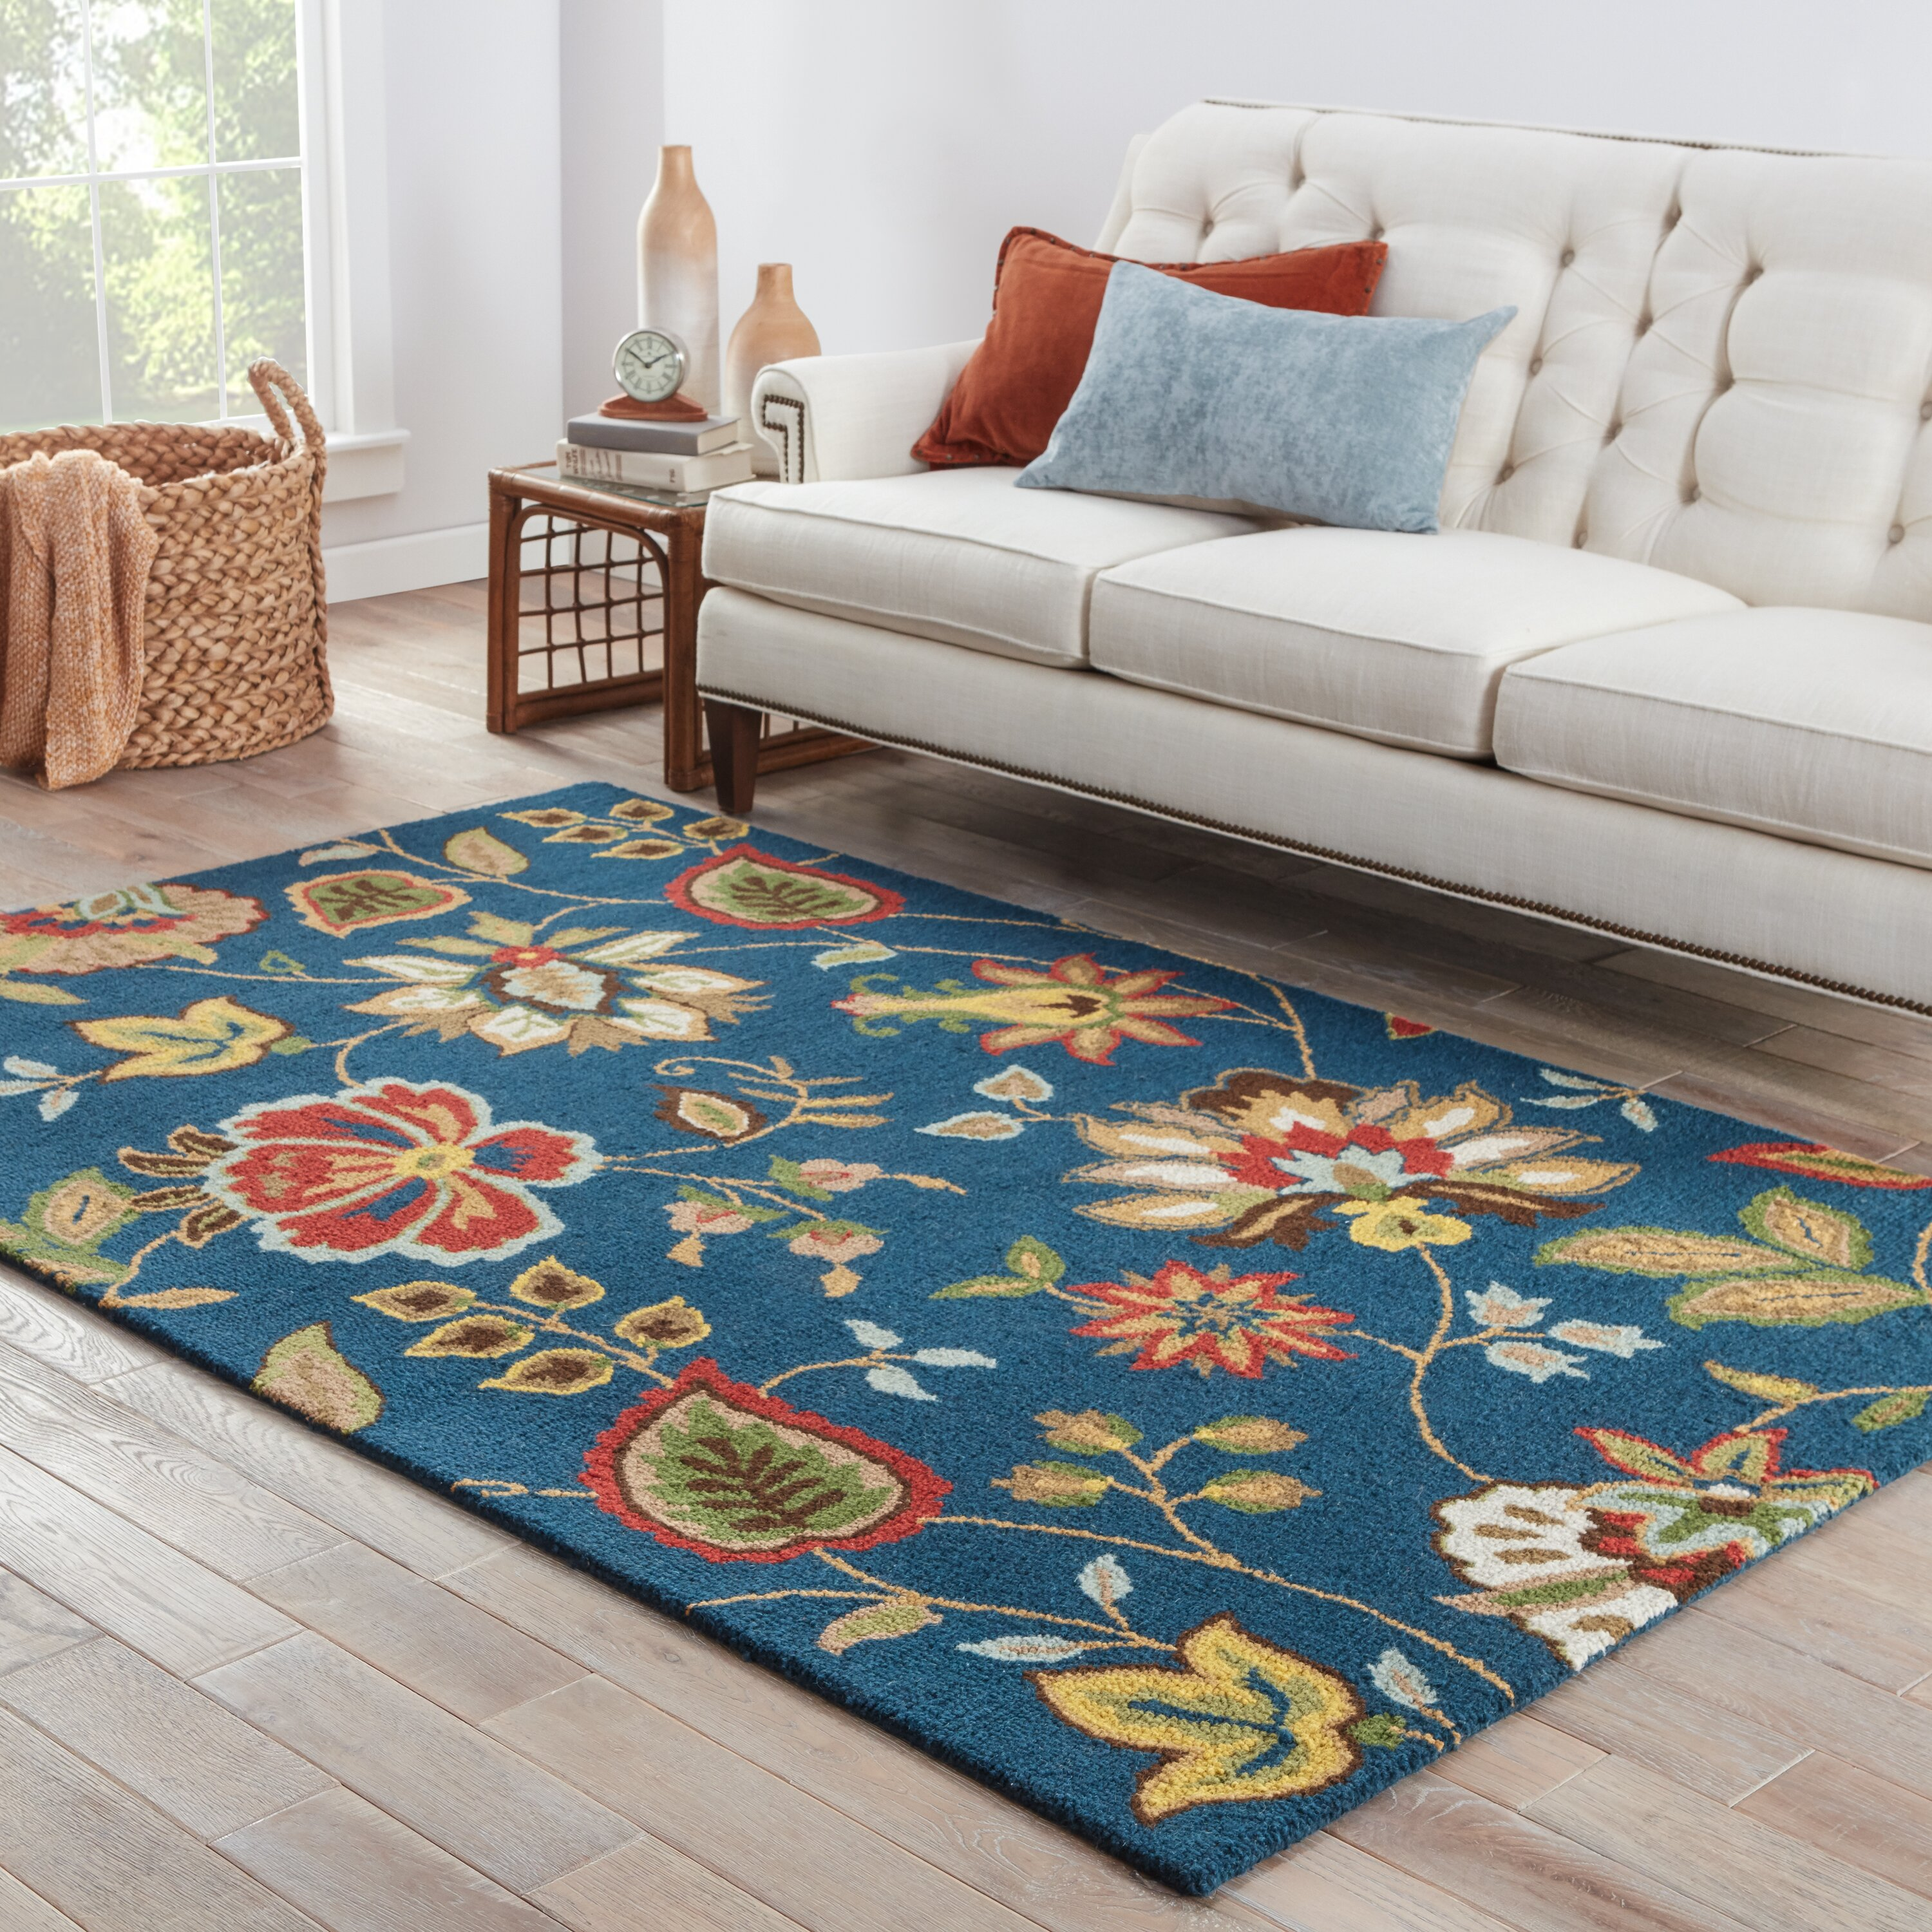 Darby Home Co Gradall Blue Floral Area Rug & Reviews